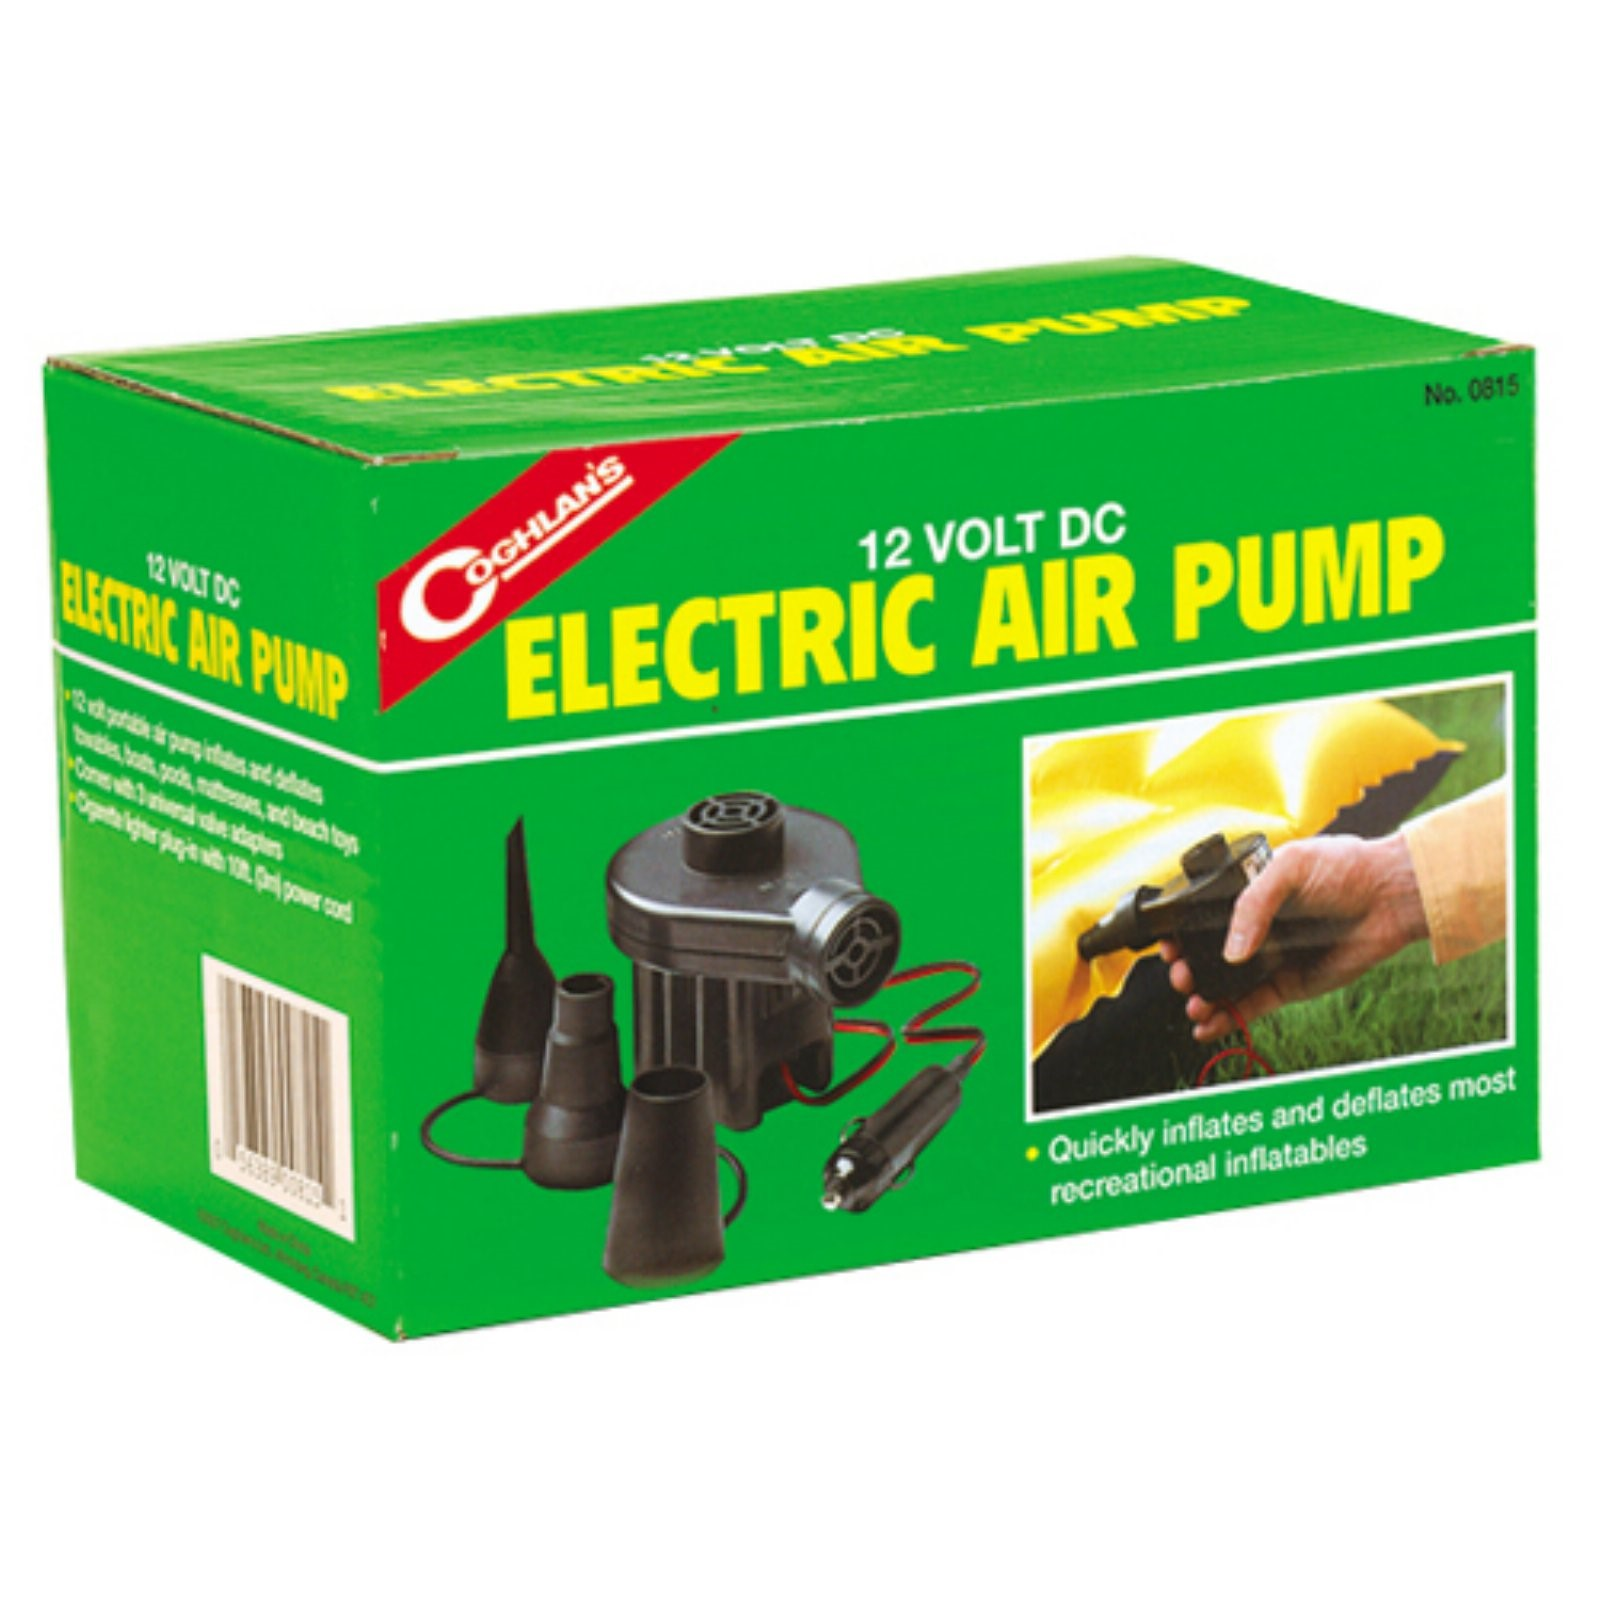 Coghlans 12V DC Electric Air Pump by Coghlans